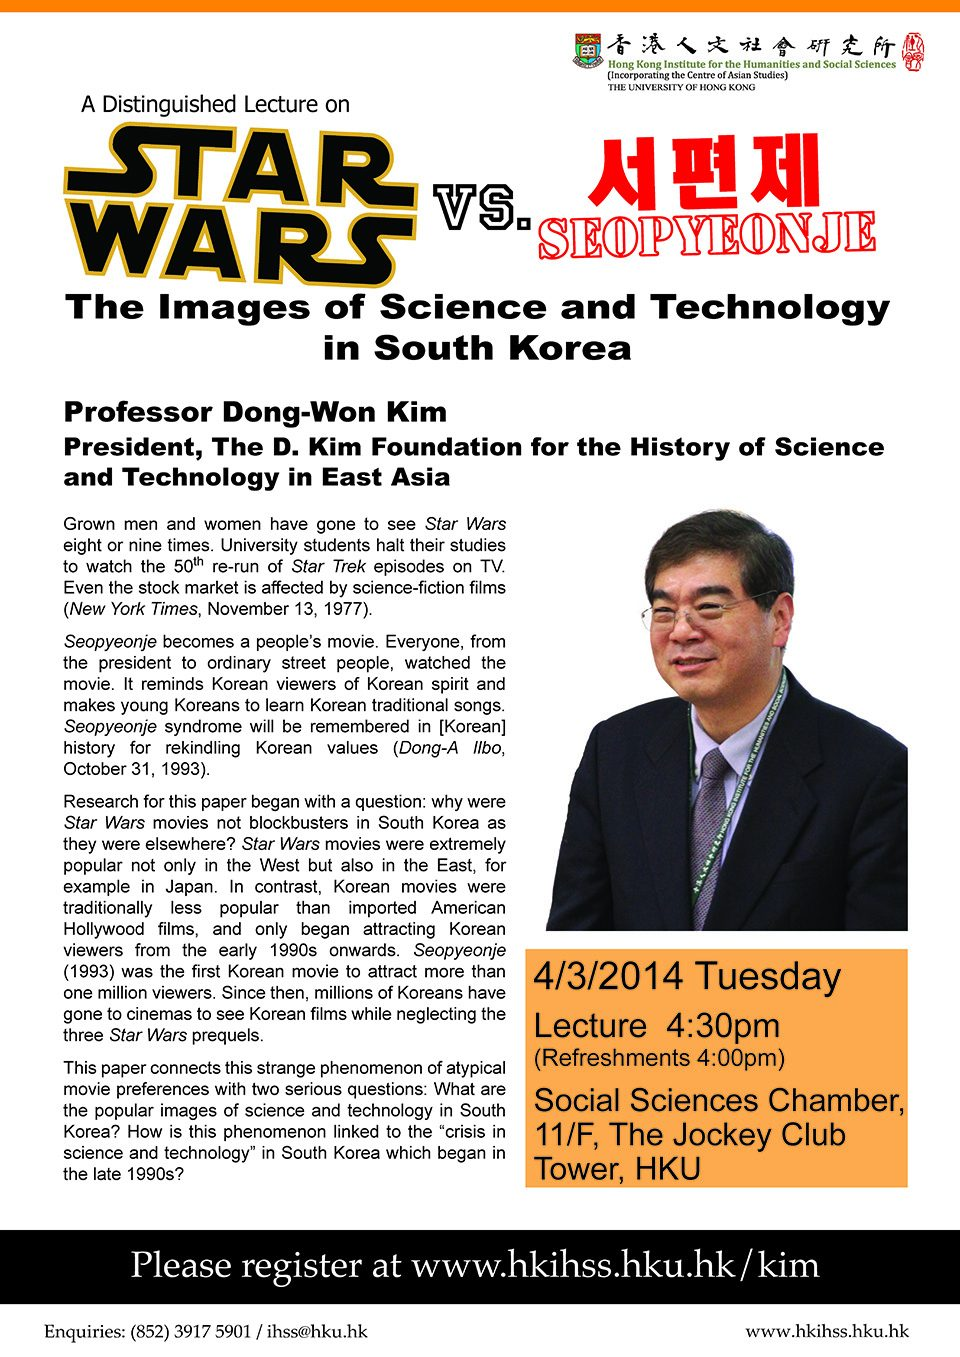 "Distinguished Lecture on ""Star Wars vs. Seopyeonje: The Images of Science and Technology in South Korea"" by Professor Dong-Won Kim (March 4, 2014)"